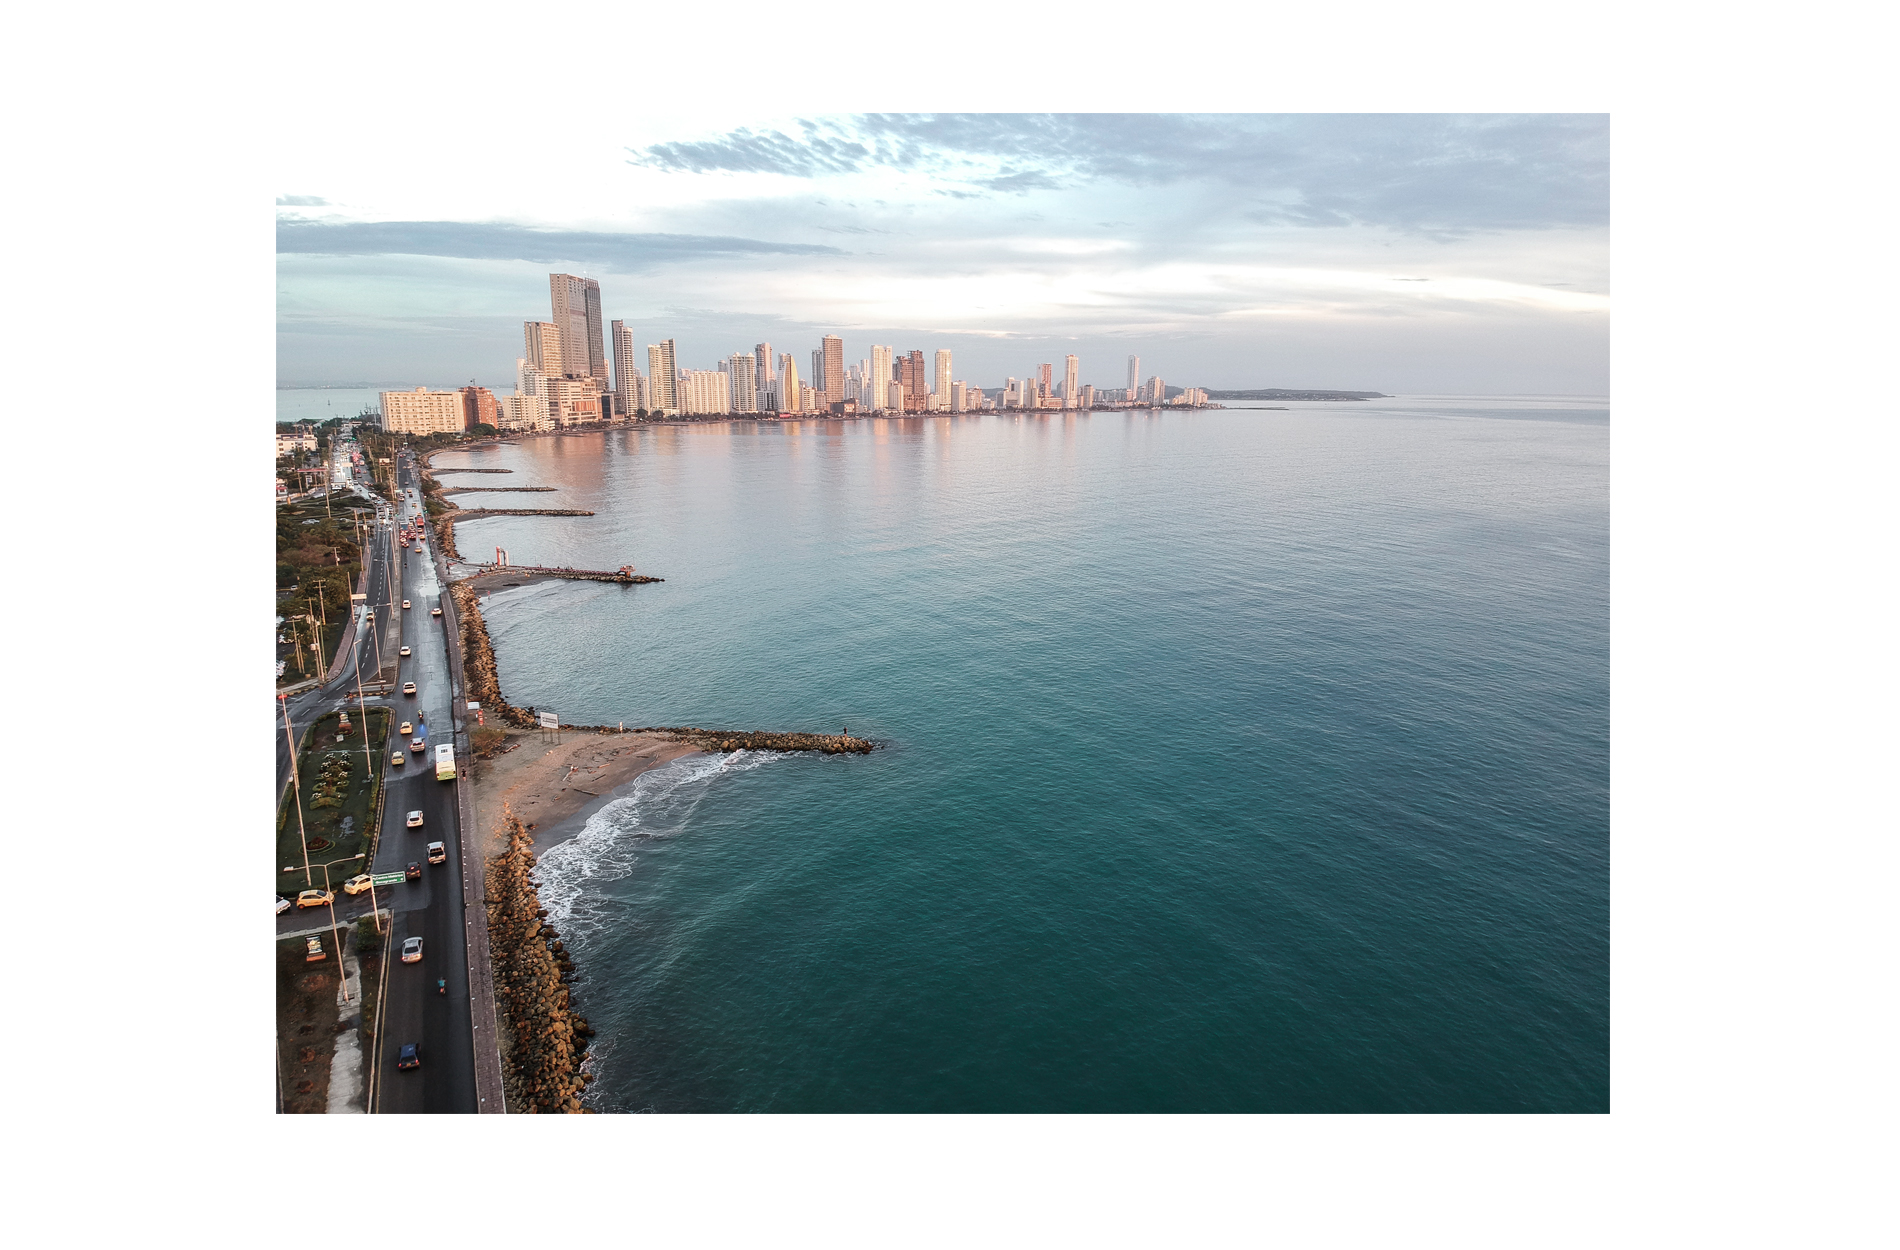 cartagena view drone skyline sunset